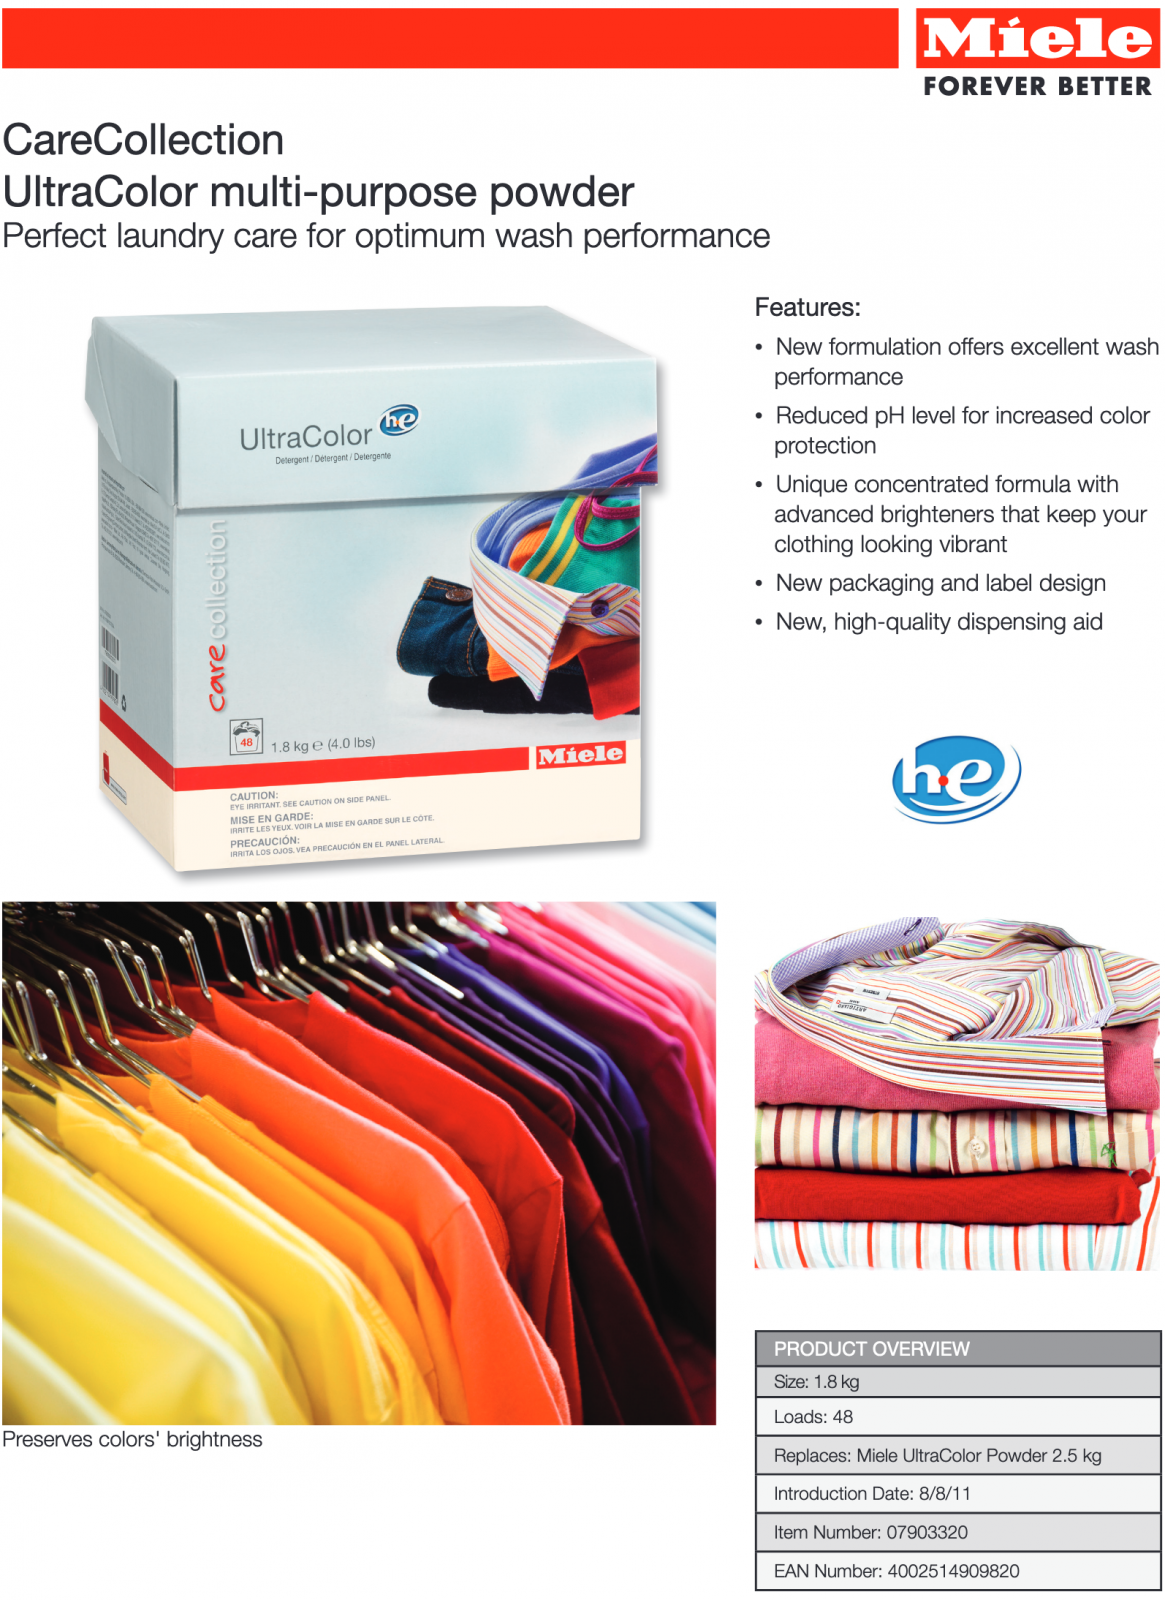 CareCollection UltraColor multi-purpose powderPerfect laundry care for optimum wash performance